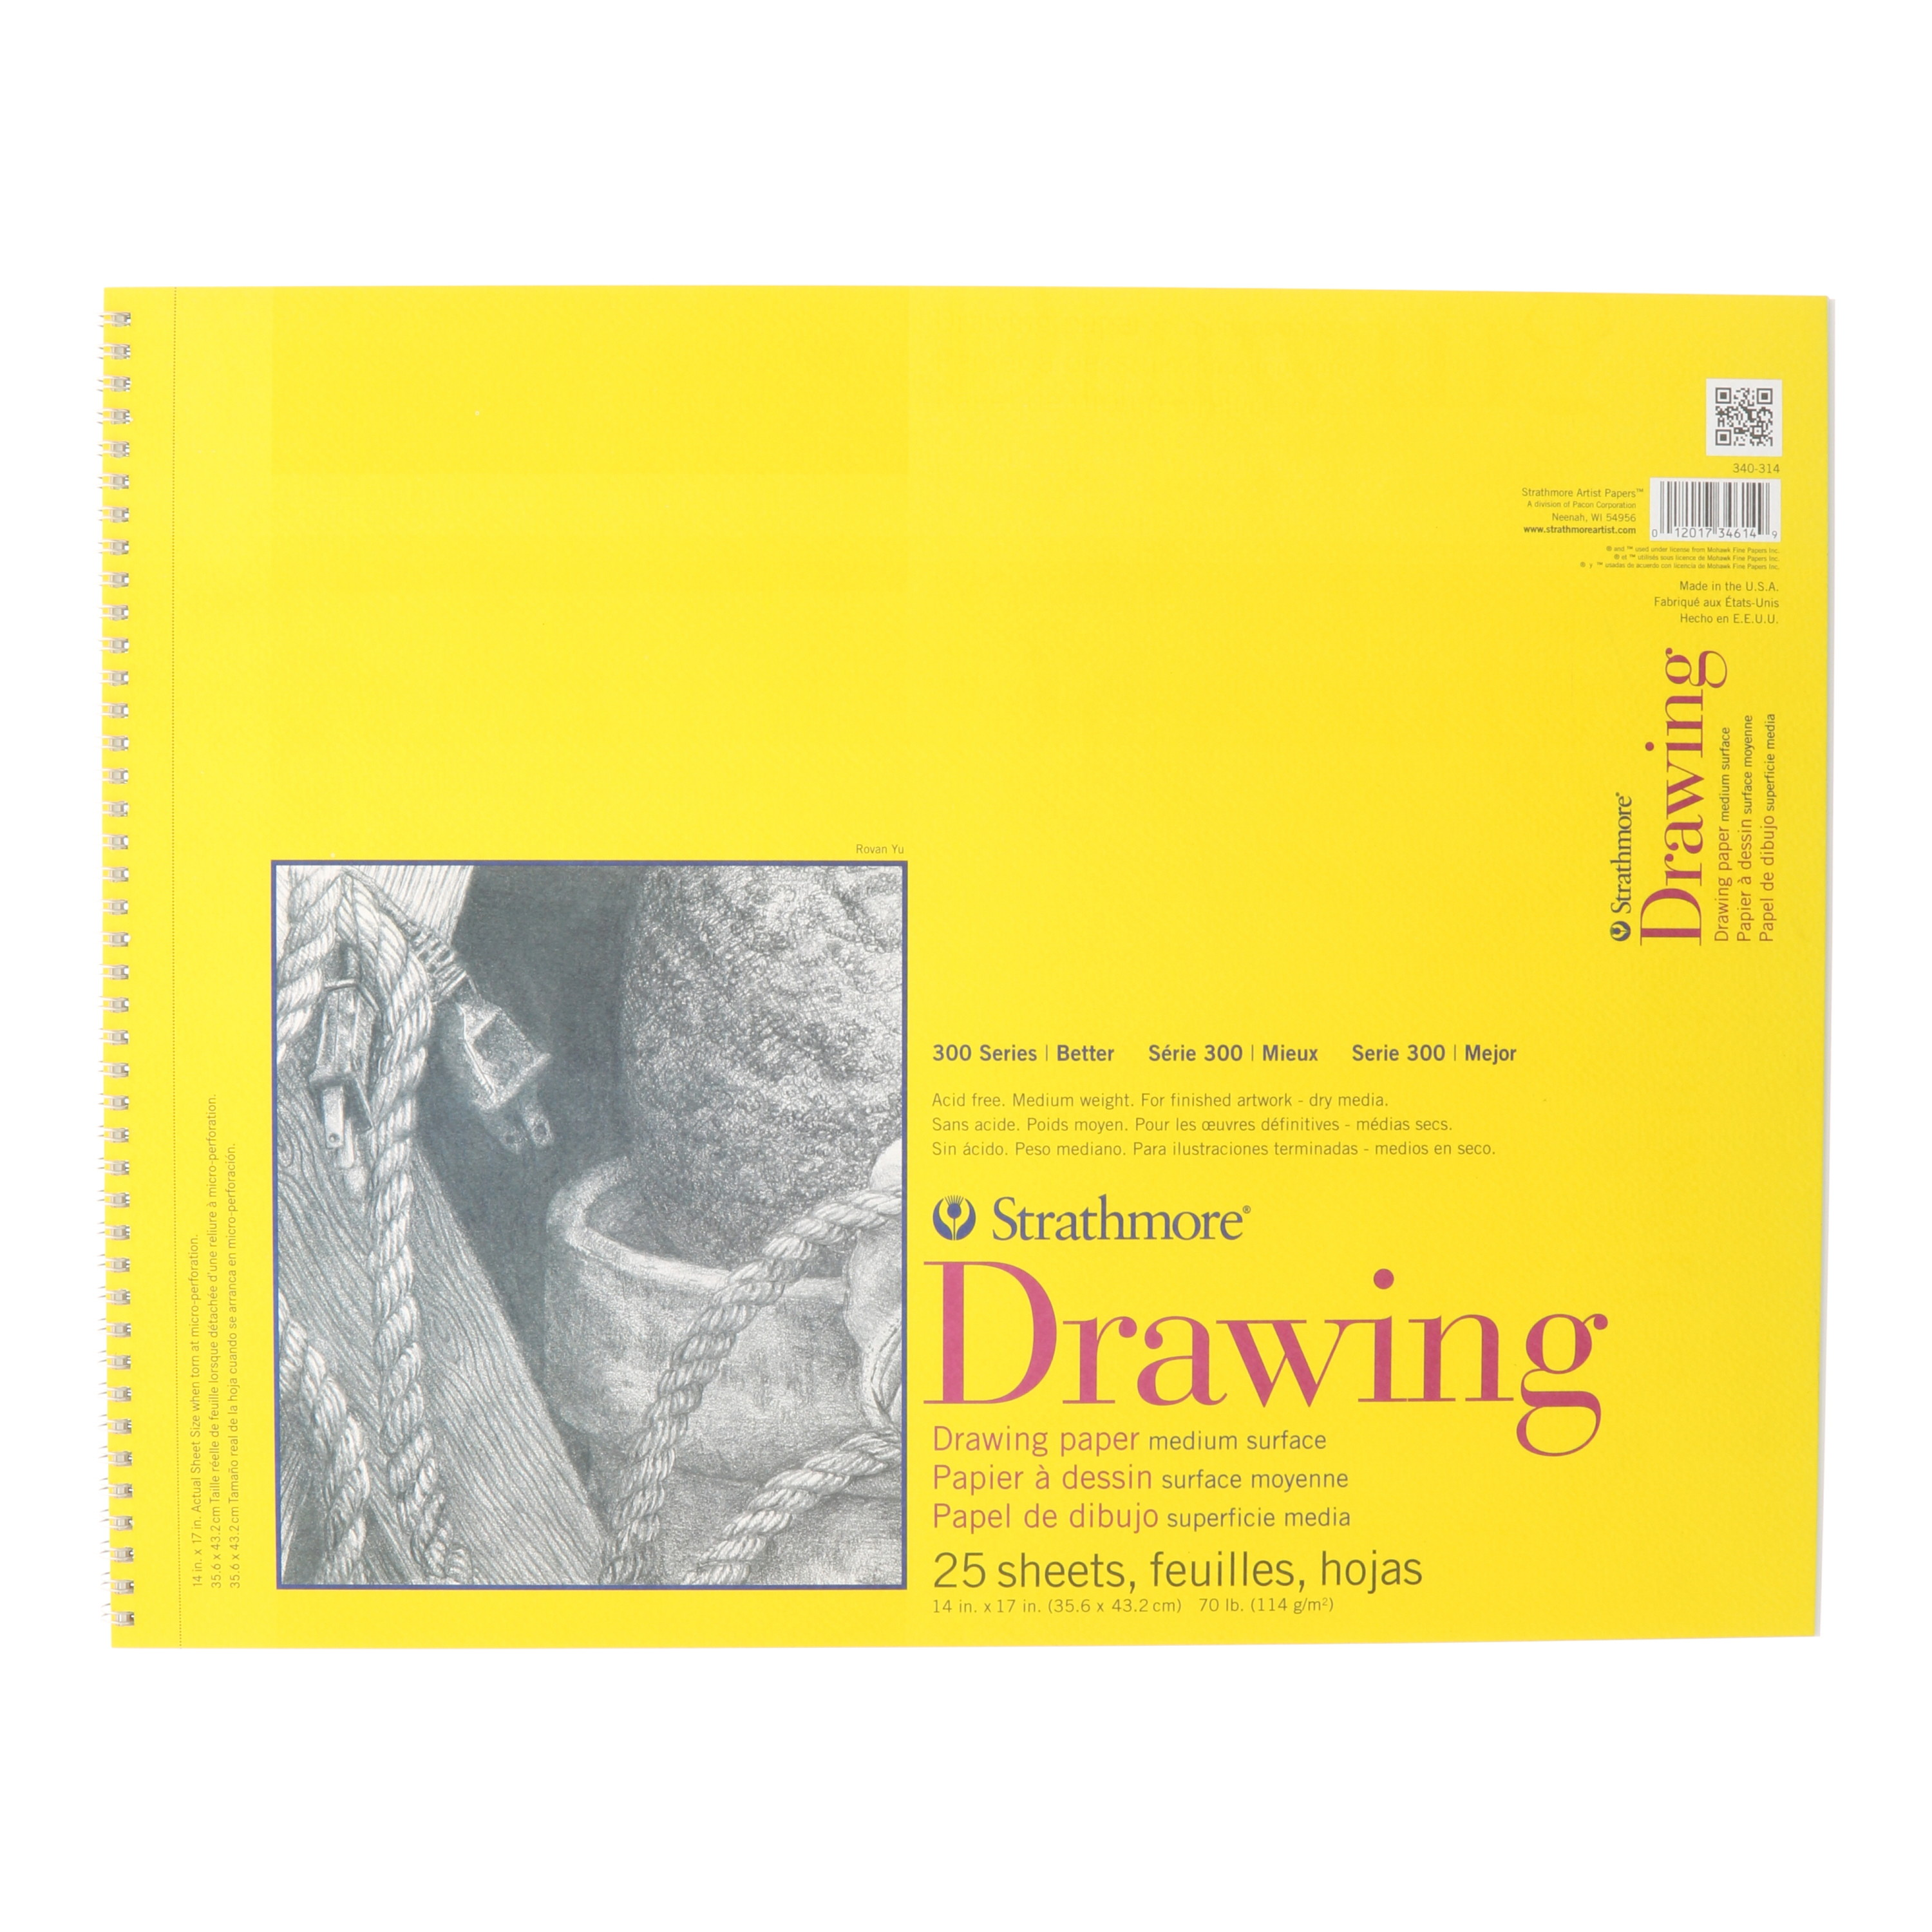 Strathmore Drawing Paper Pad, 300 Series, 25 Sheets, 14in x 17in